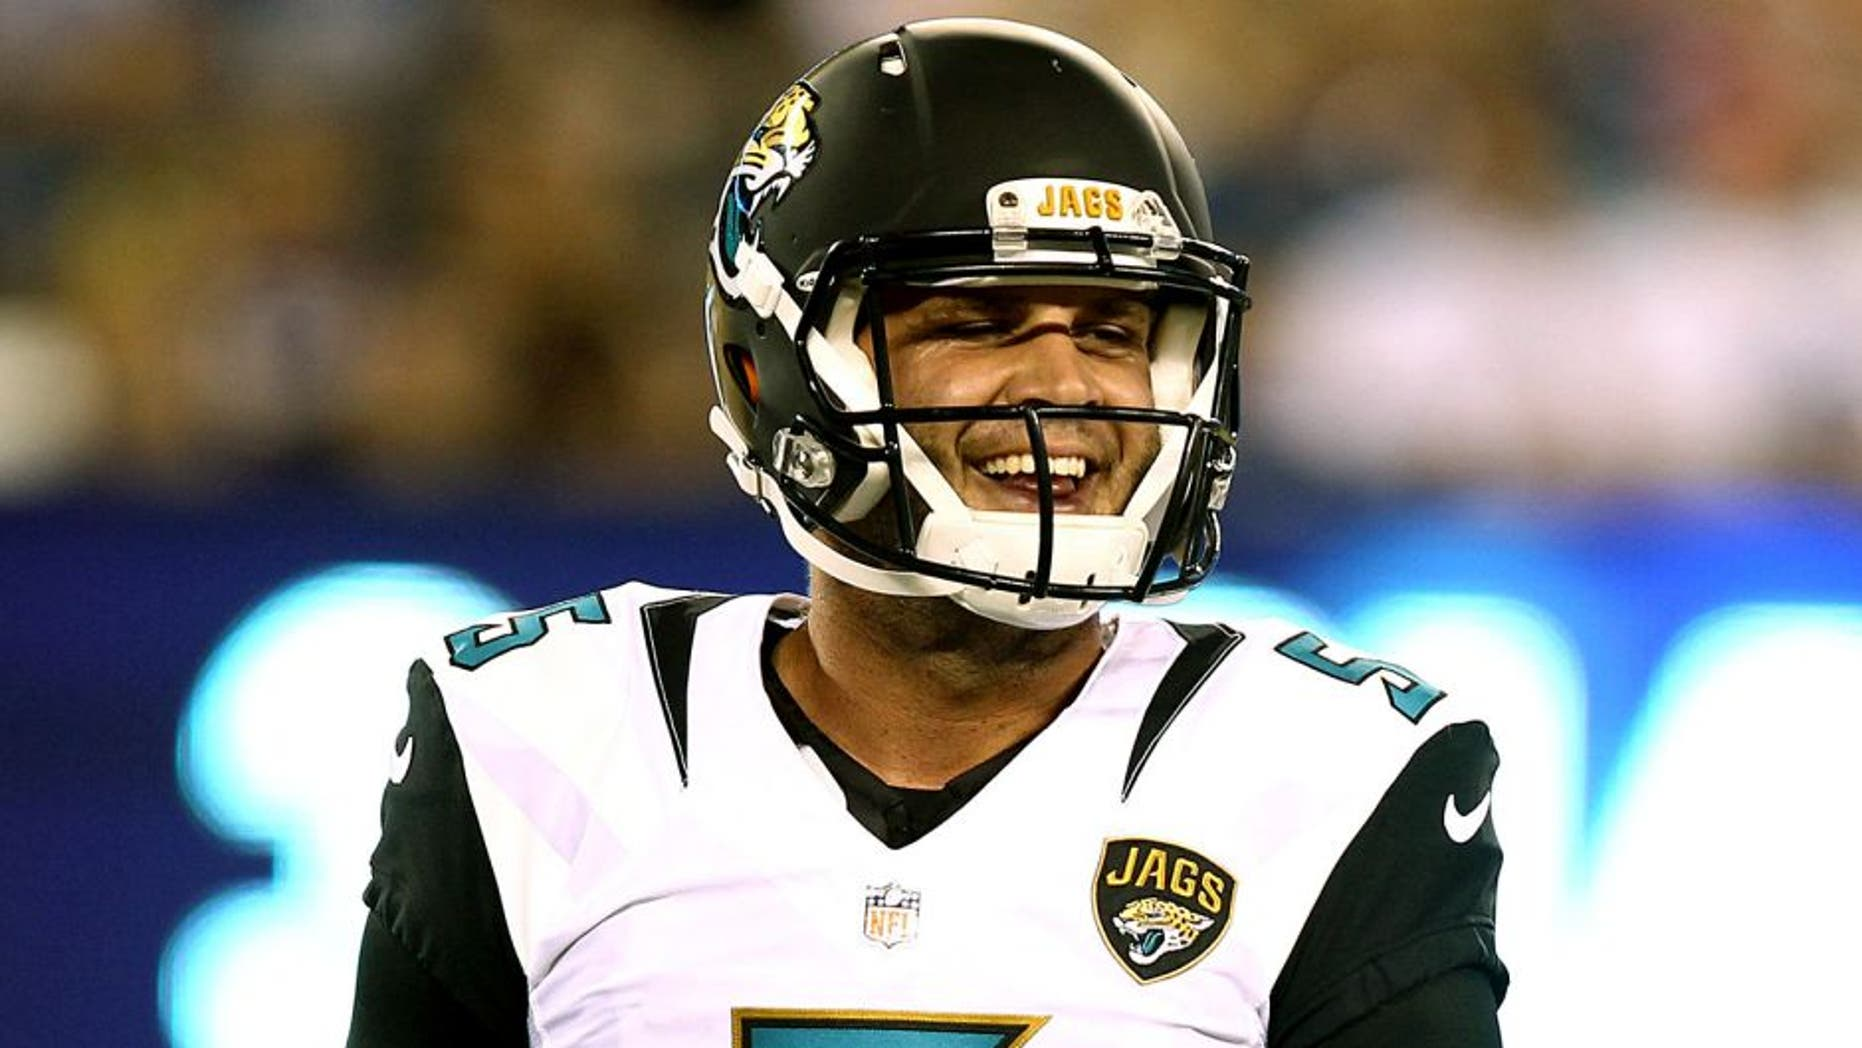 Aug 22, 2015; East Rutherford, NJ, USA; Jacksonville Jaguars quarterback Blake Bortles (5) smiles during the first half against the New York Giants at MetLife Stadium. Mandatory Credit: Danny Wild-USA TODAY Sports